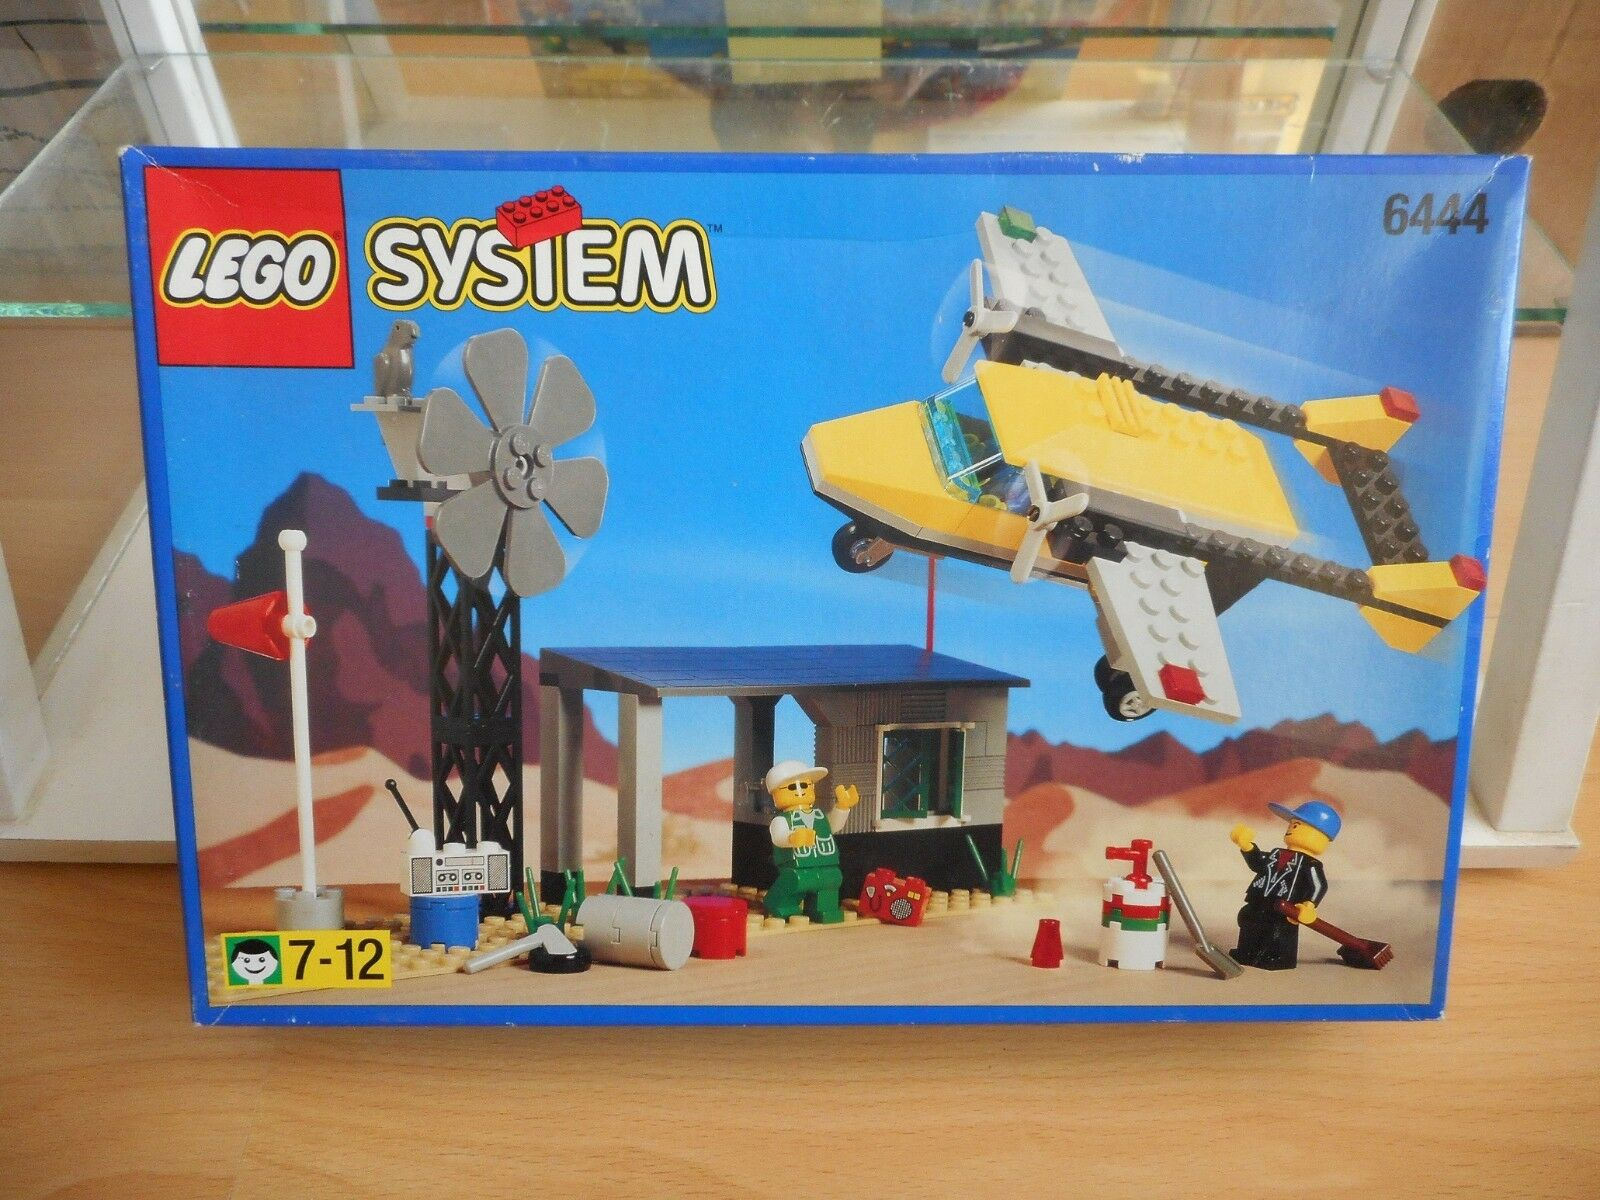 Lego System Dessert Airstrip in Box Unopened Sealed (Lego nr  6444)